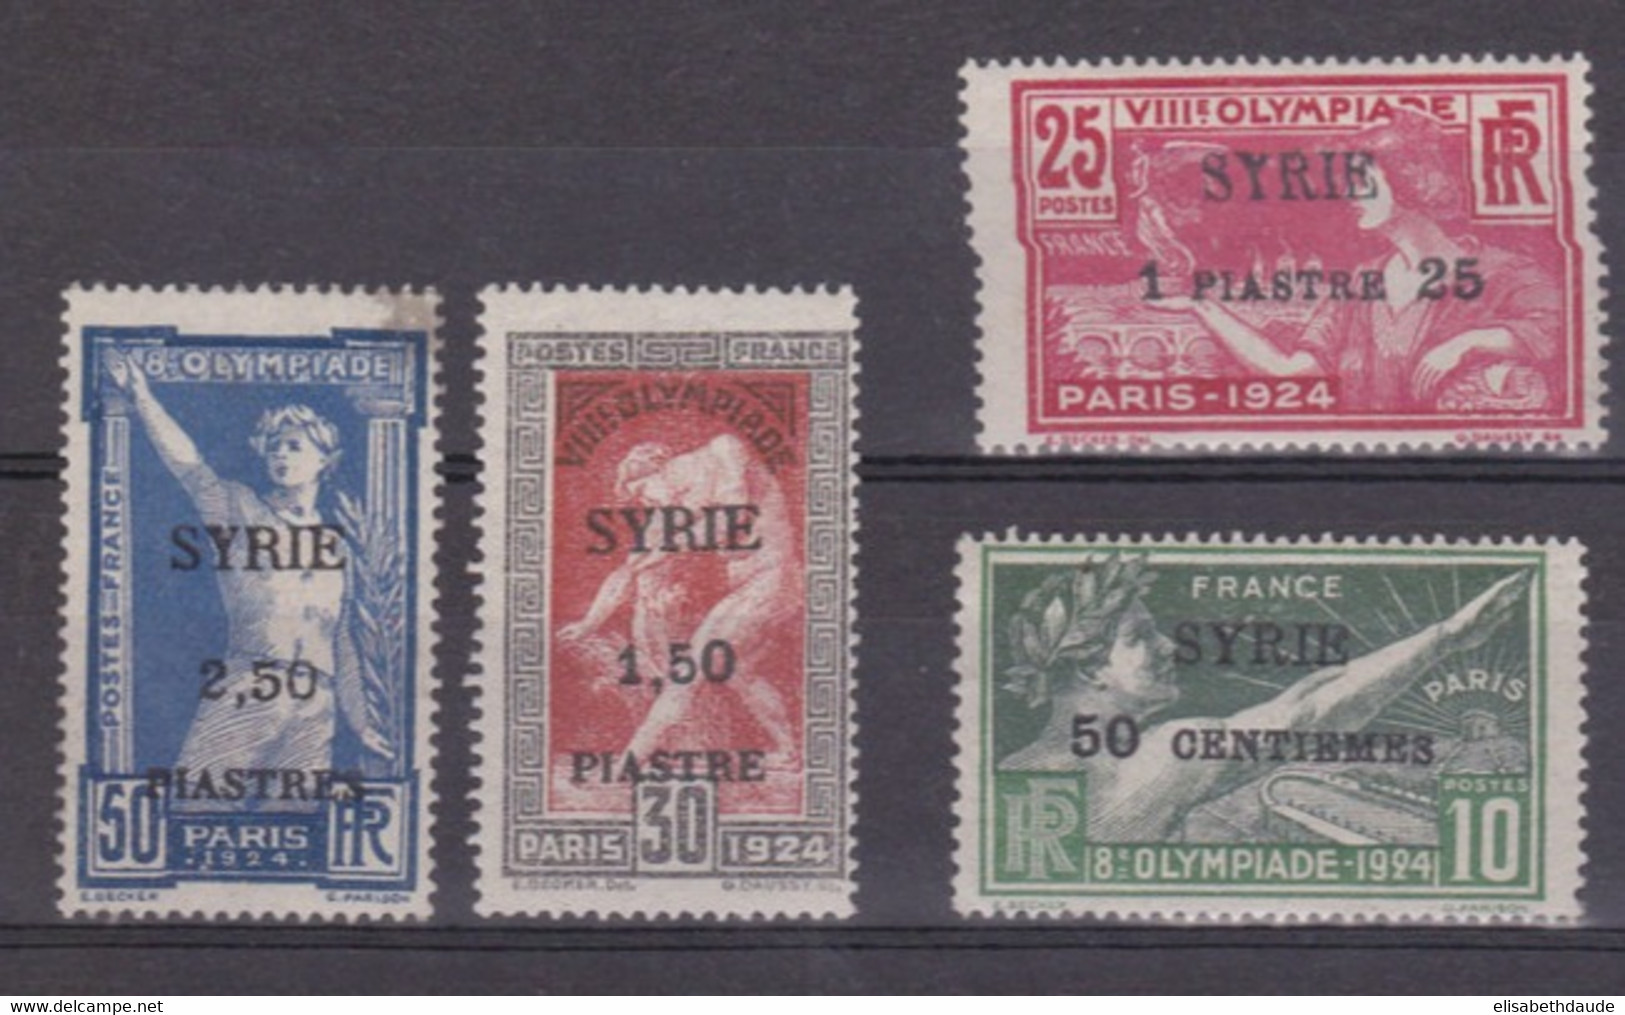 SYRIE - 1924 - JEUX OLYMPIQUES - Yvert N° 122/125 *  - COTE = 168 Euros - Unused Stamps